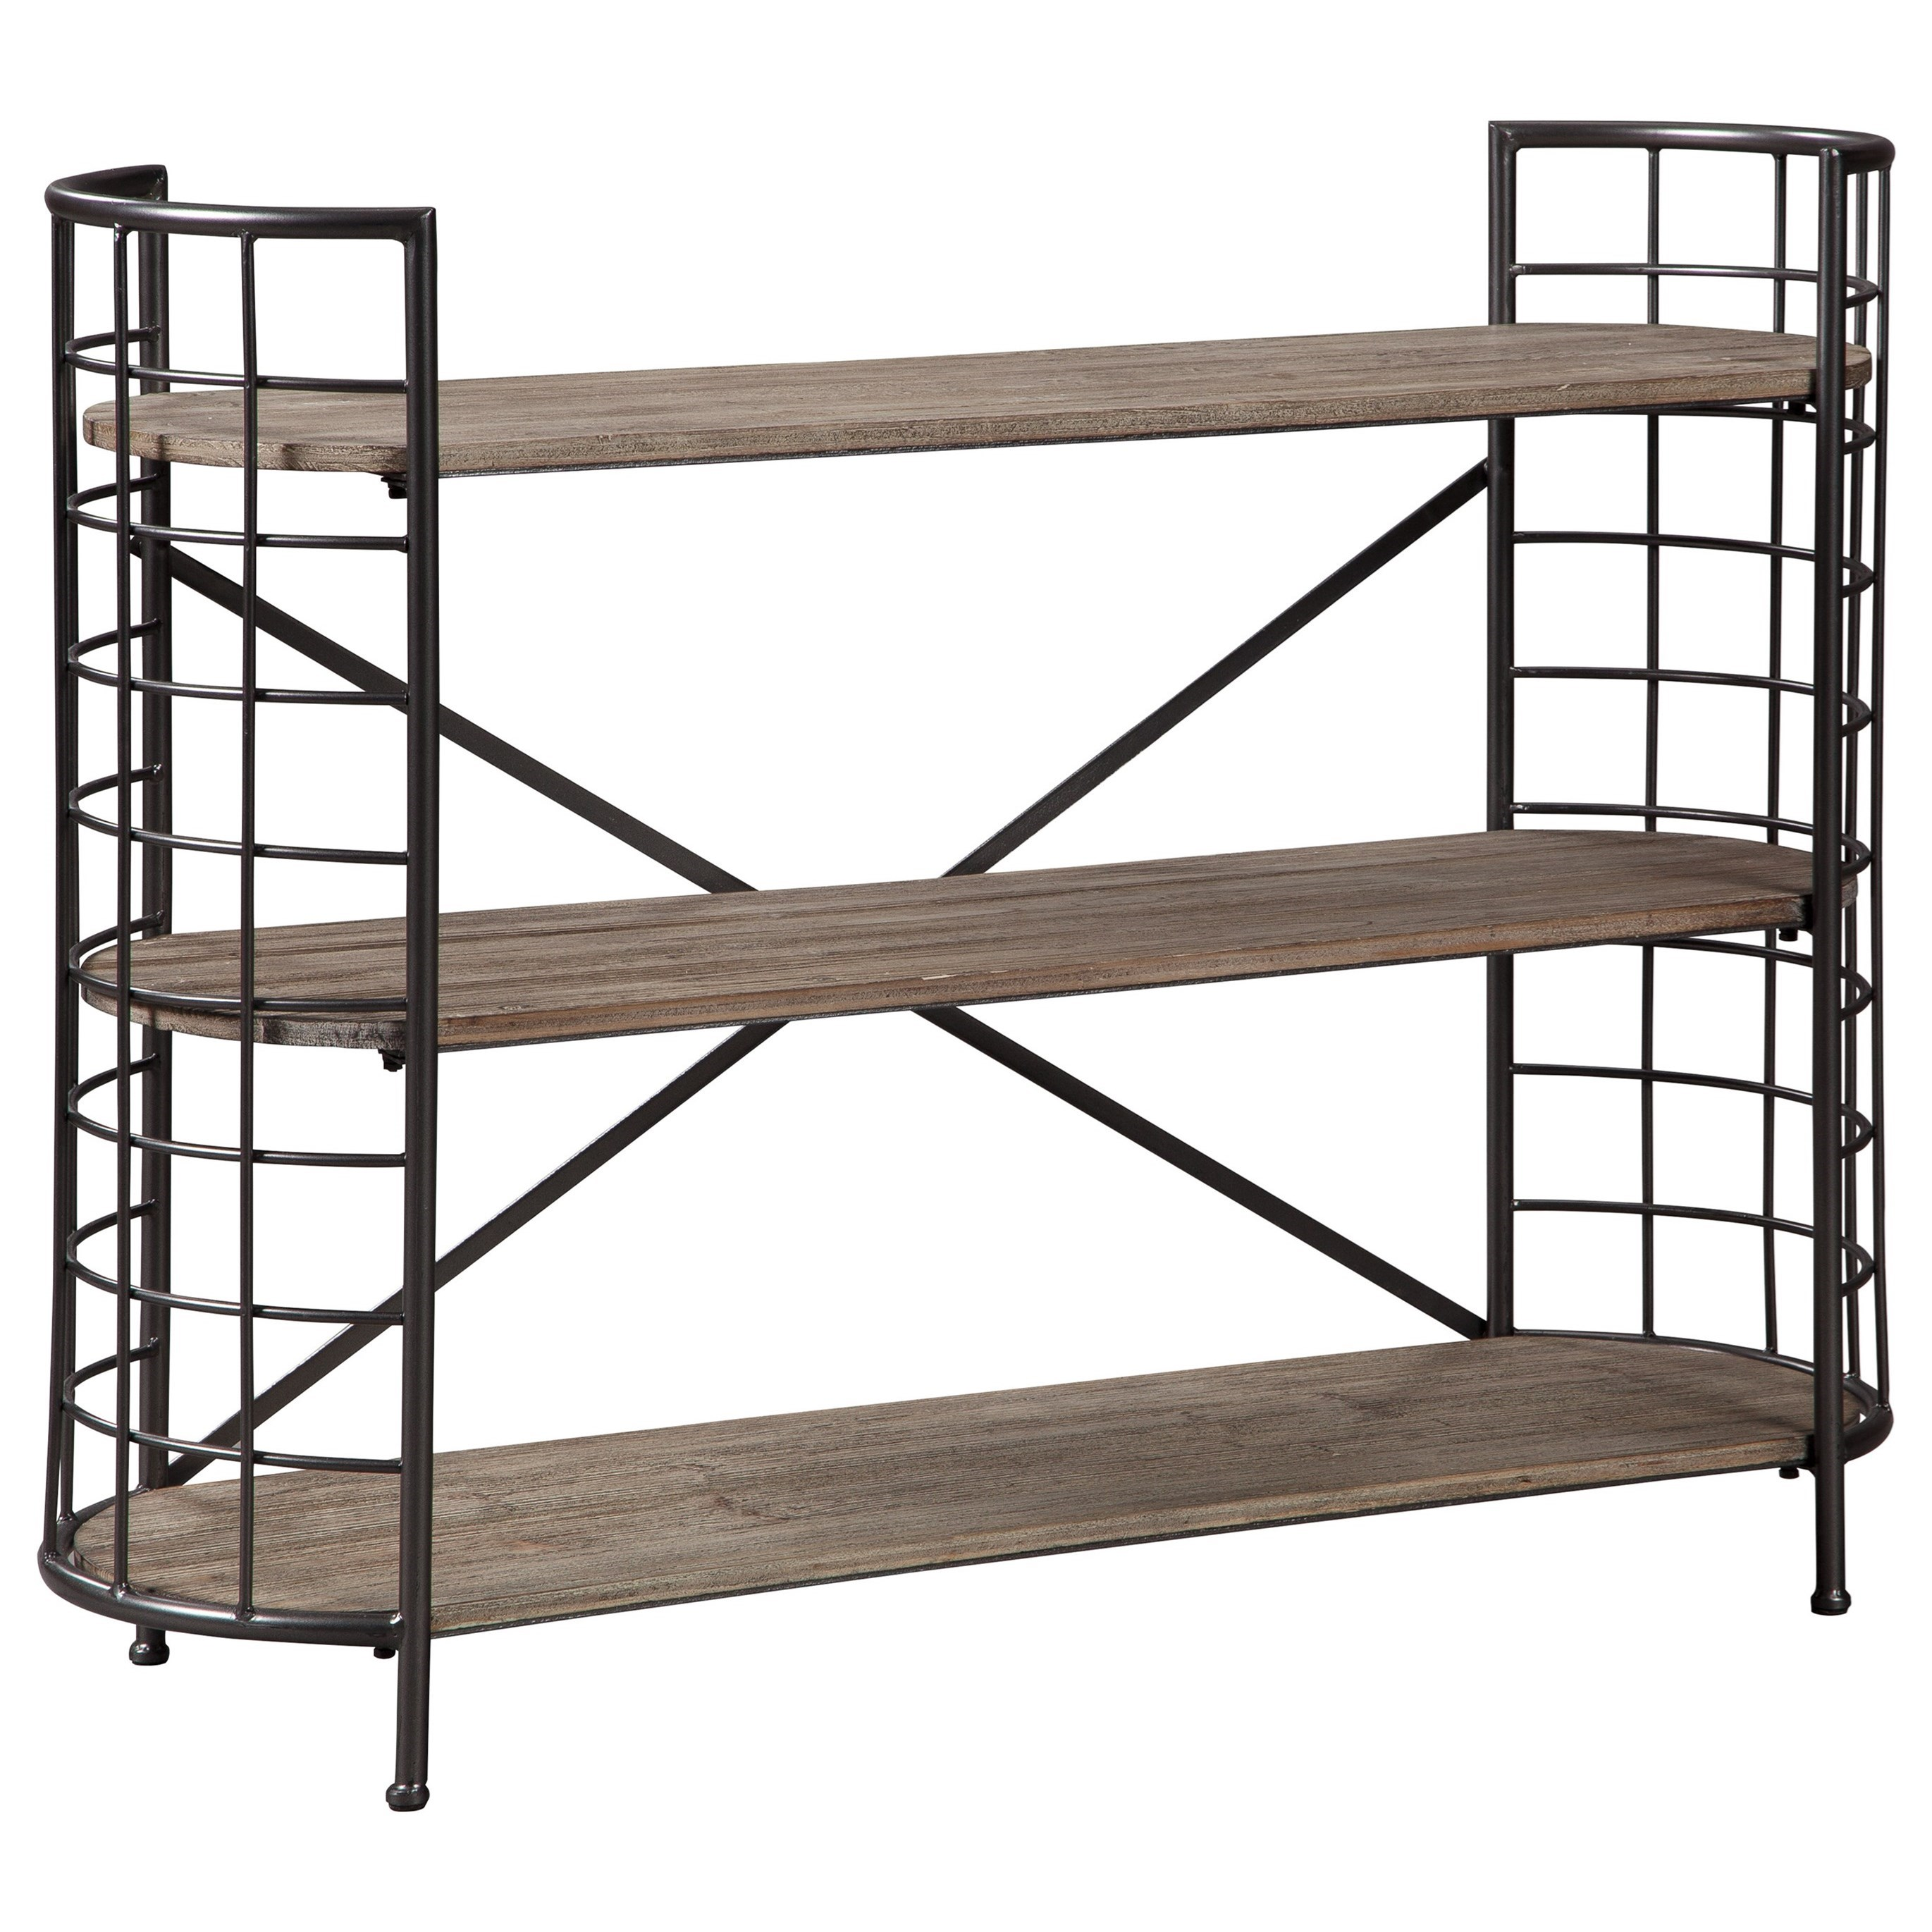 Flintley Bookcase by Signature Design by Ashley at Darvin Furniture